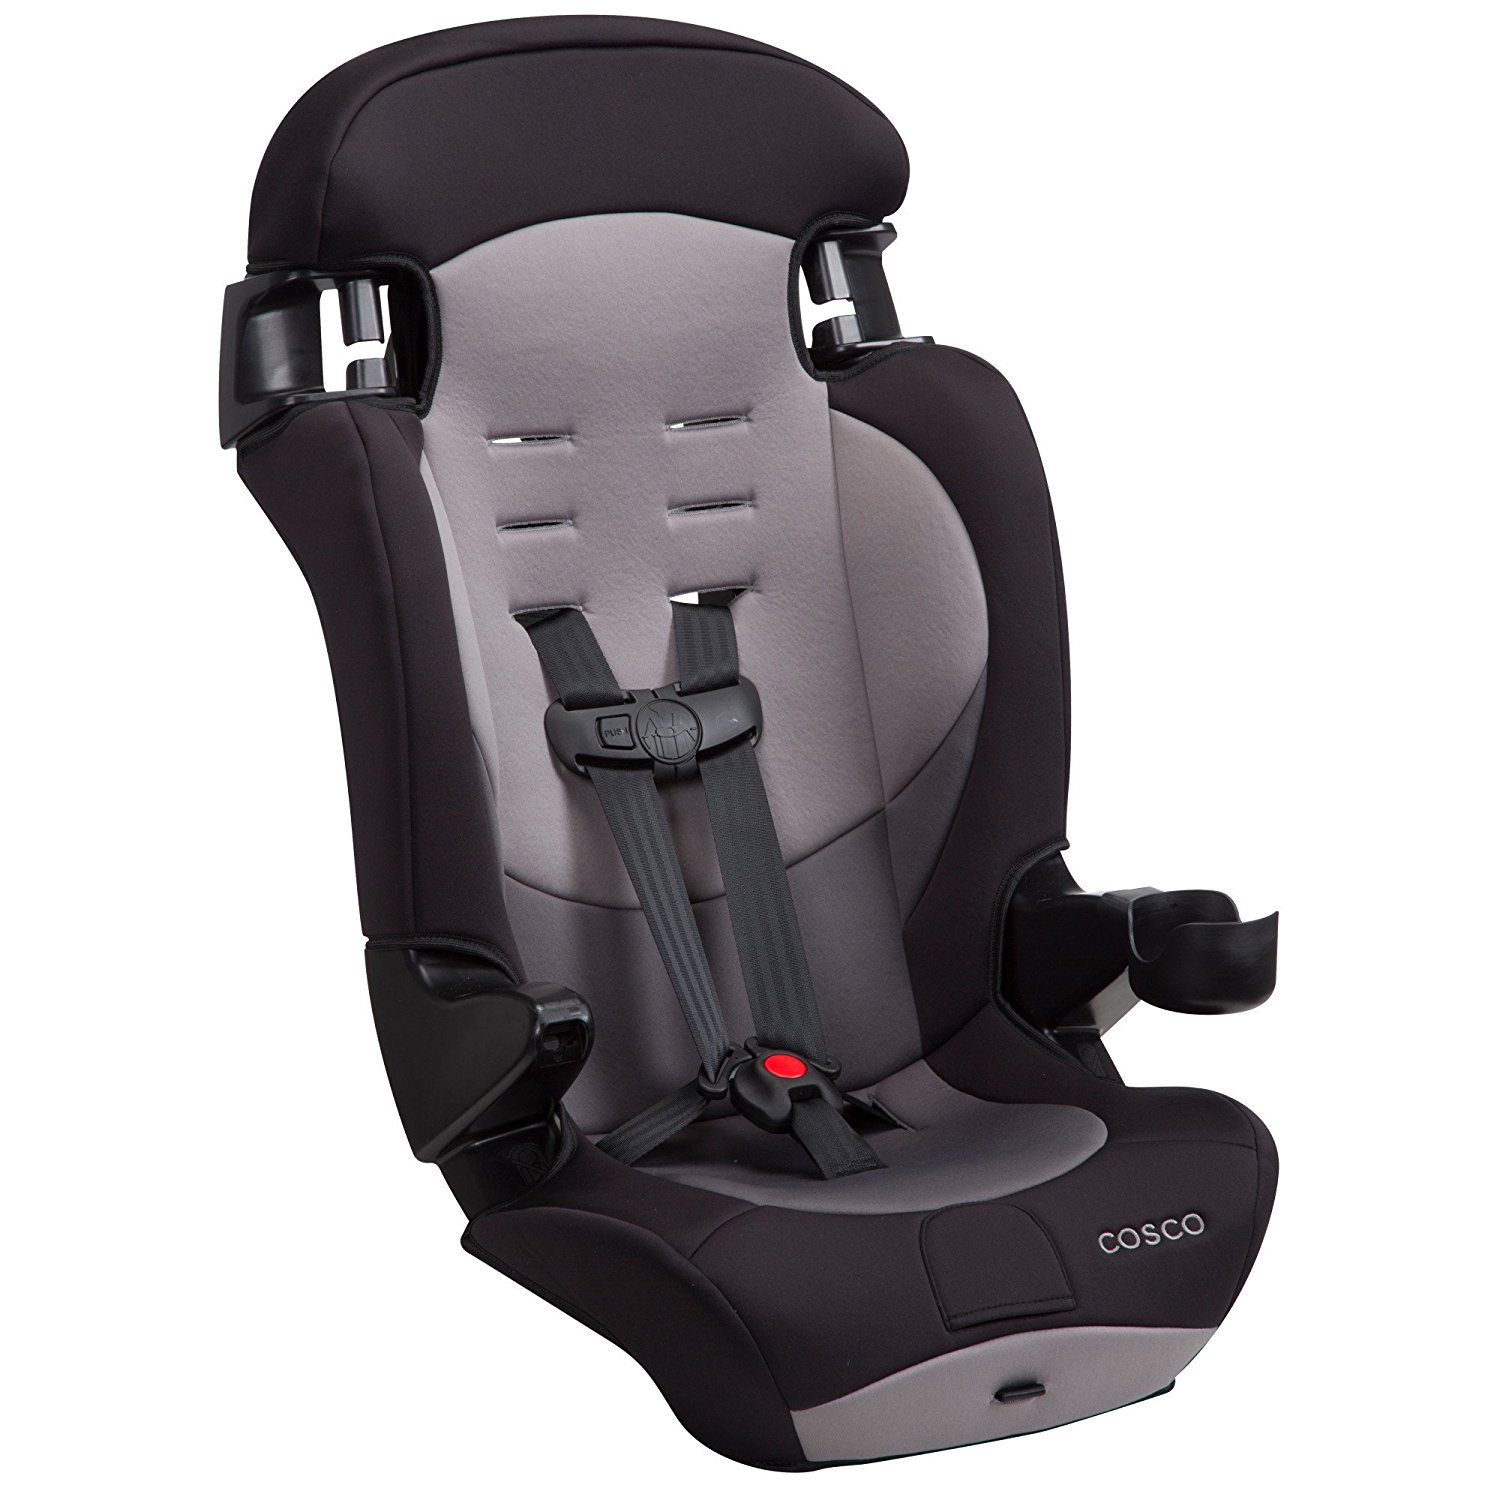 Cosco Finale DX 2-in-1 Booster Car Seat - Dusk